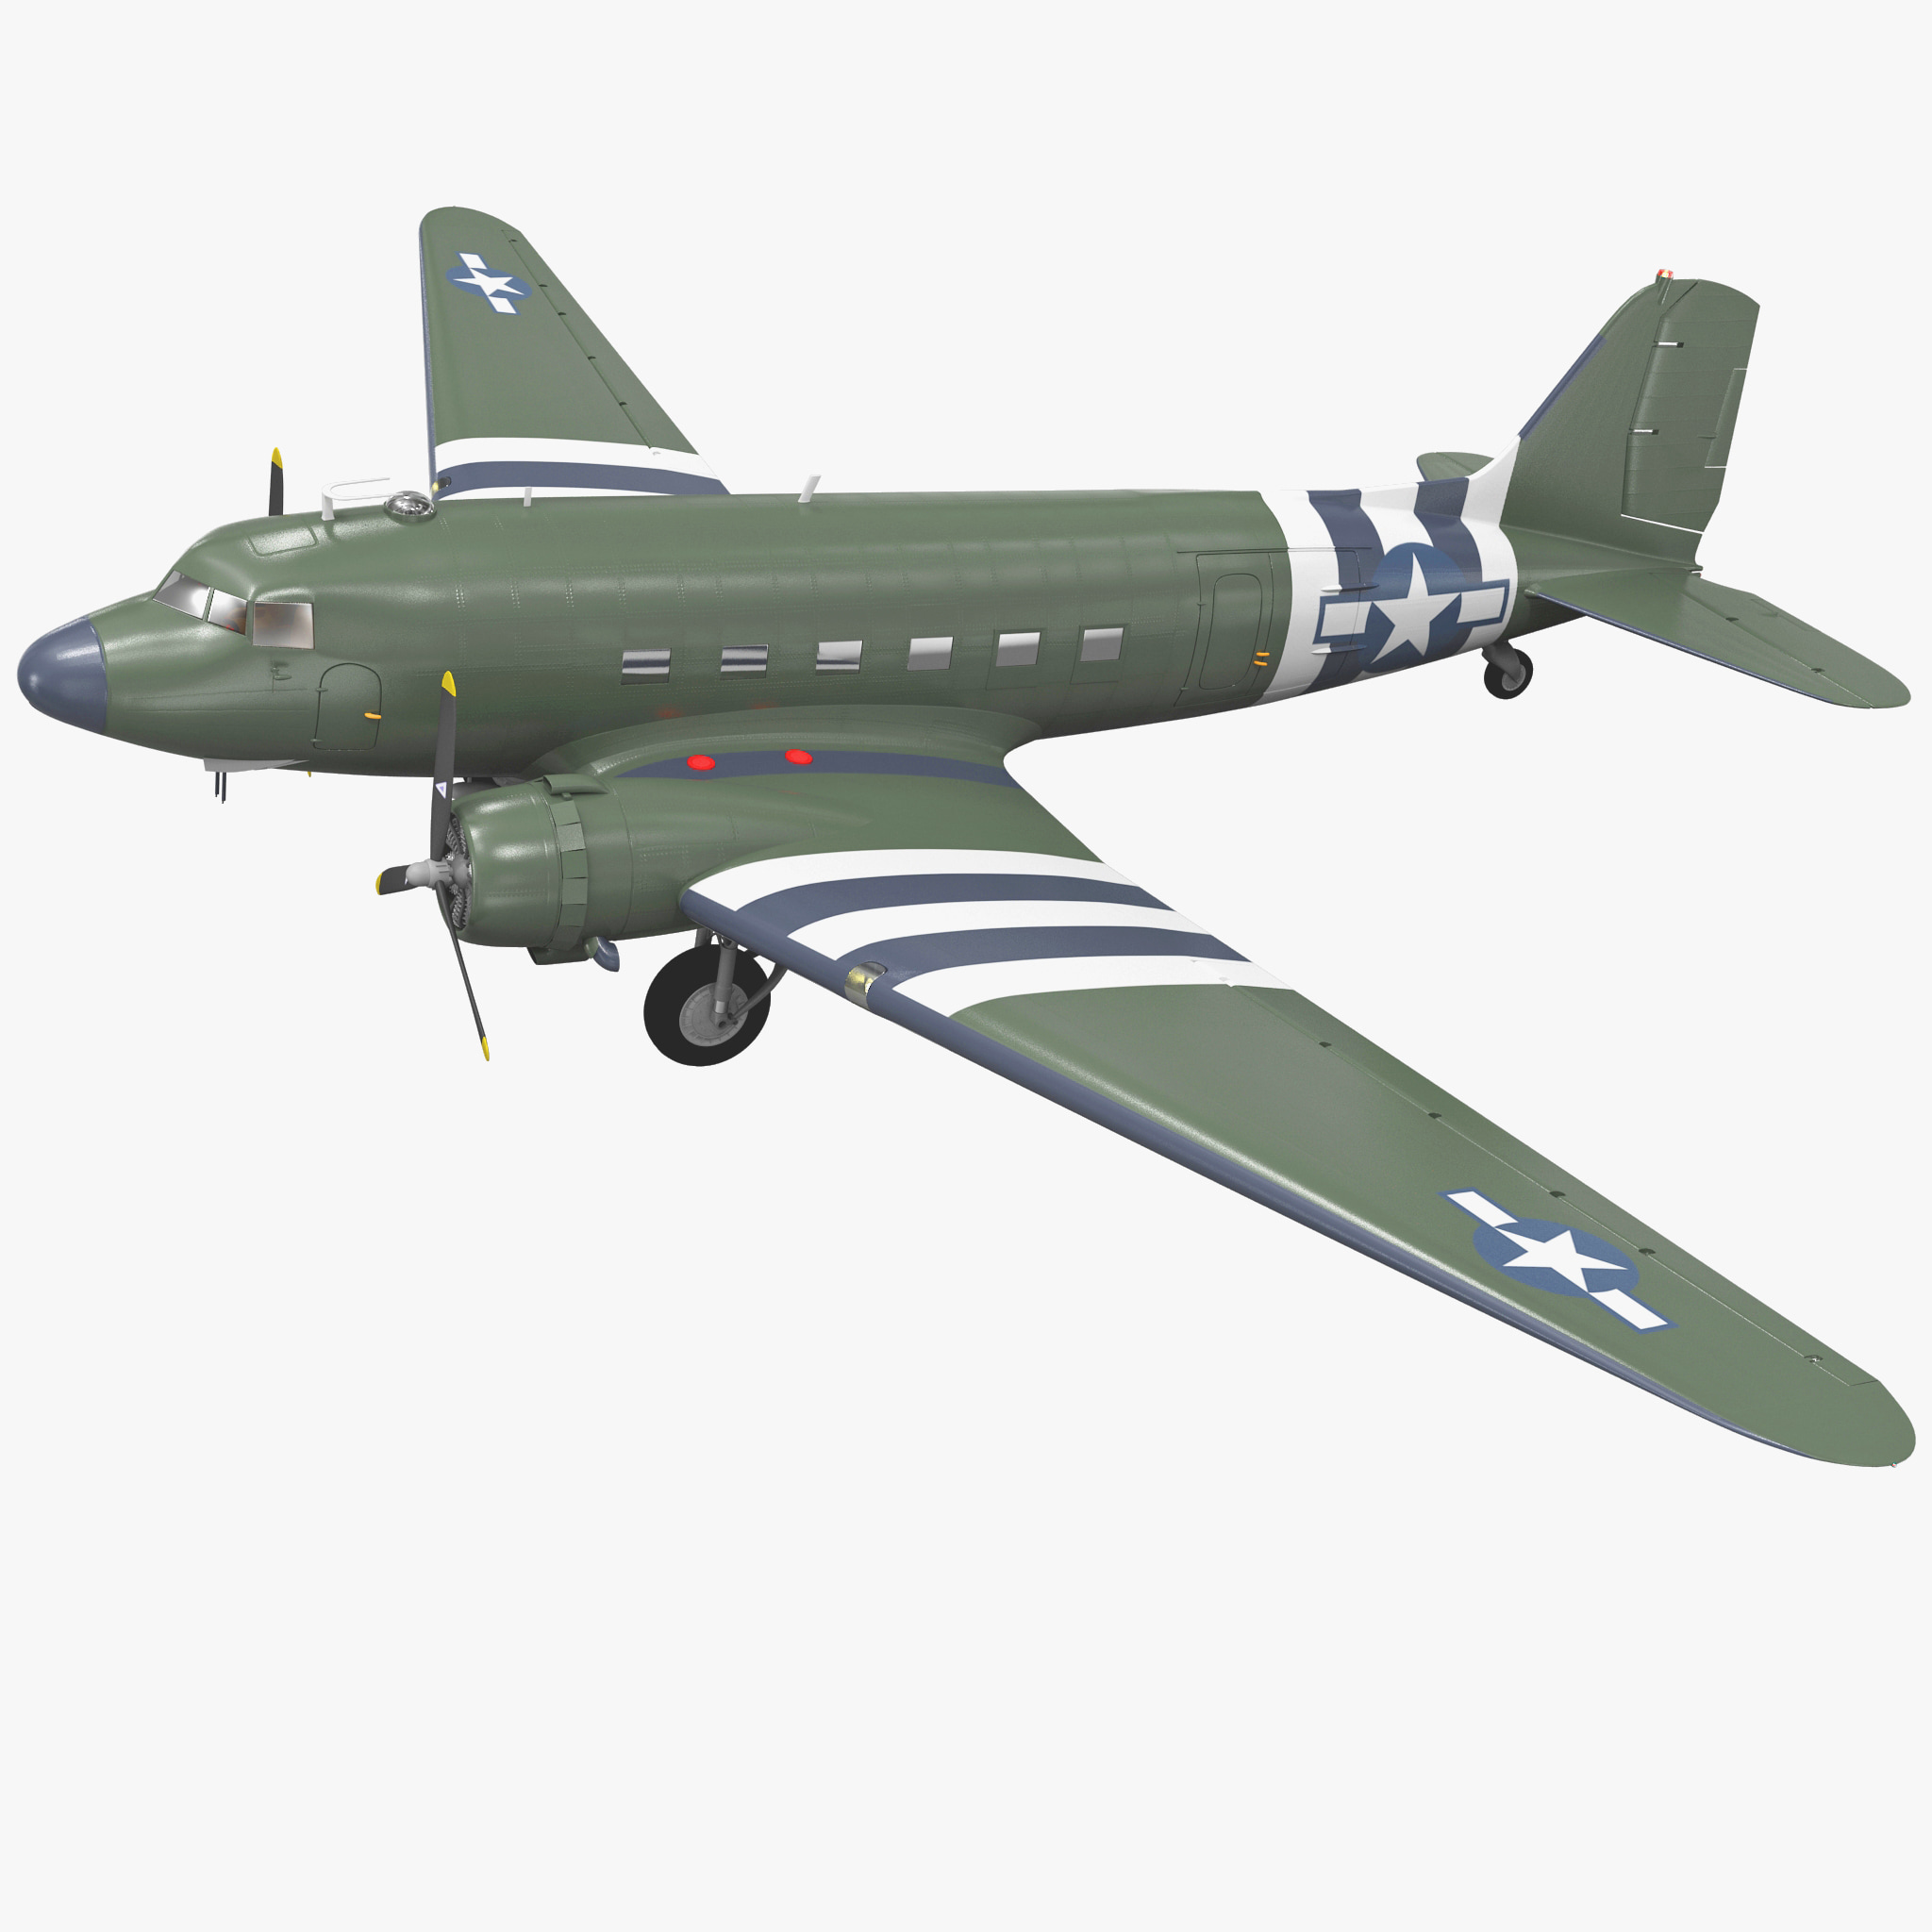 Military Transport Aircraft Douglas C-47 Skytrain_1.jpg